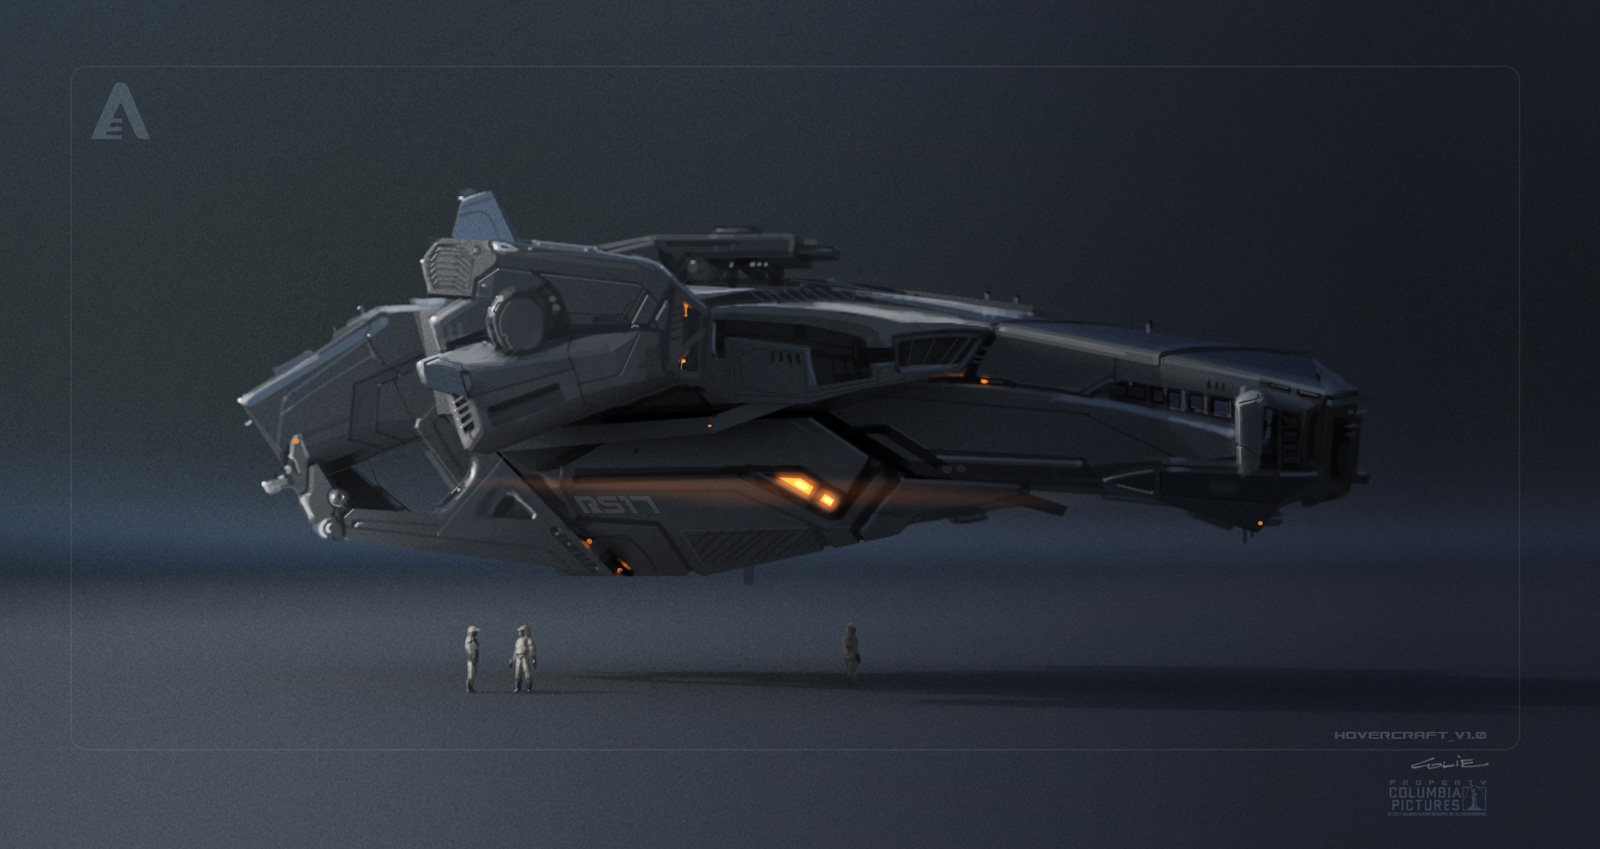 1000 images about concept art vehicles on pinterest for Spaceship design